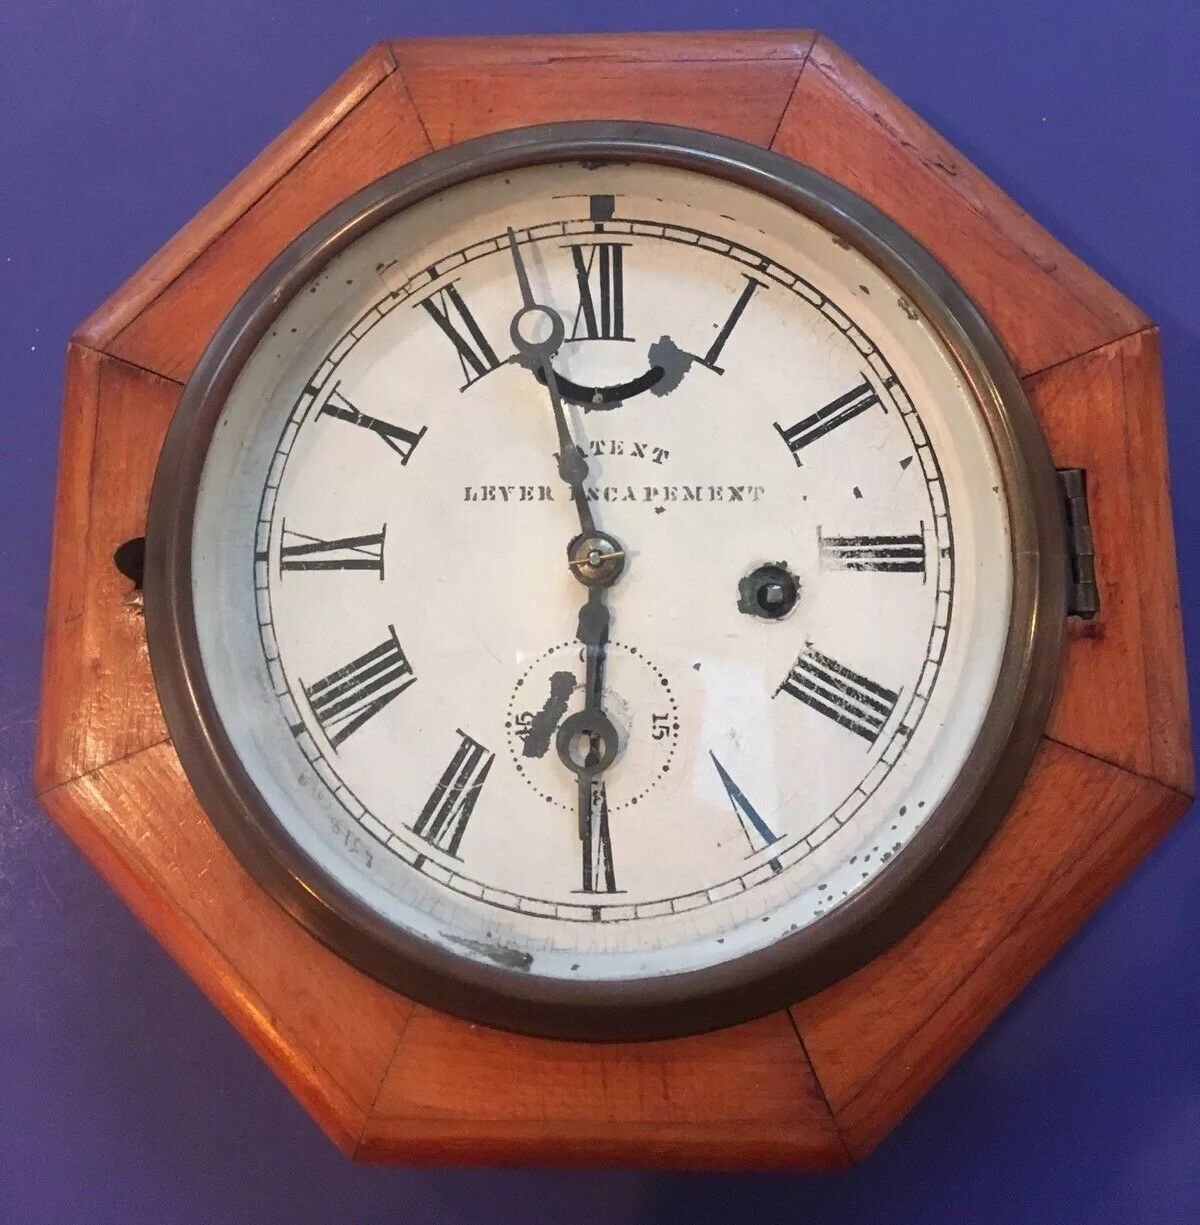 ANTIQUE EARLY 1900'S NEW HAVEN TIME ONLY MARINE WALL CLOCK RUNNING CONDITION